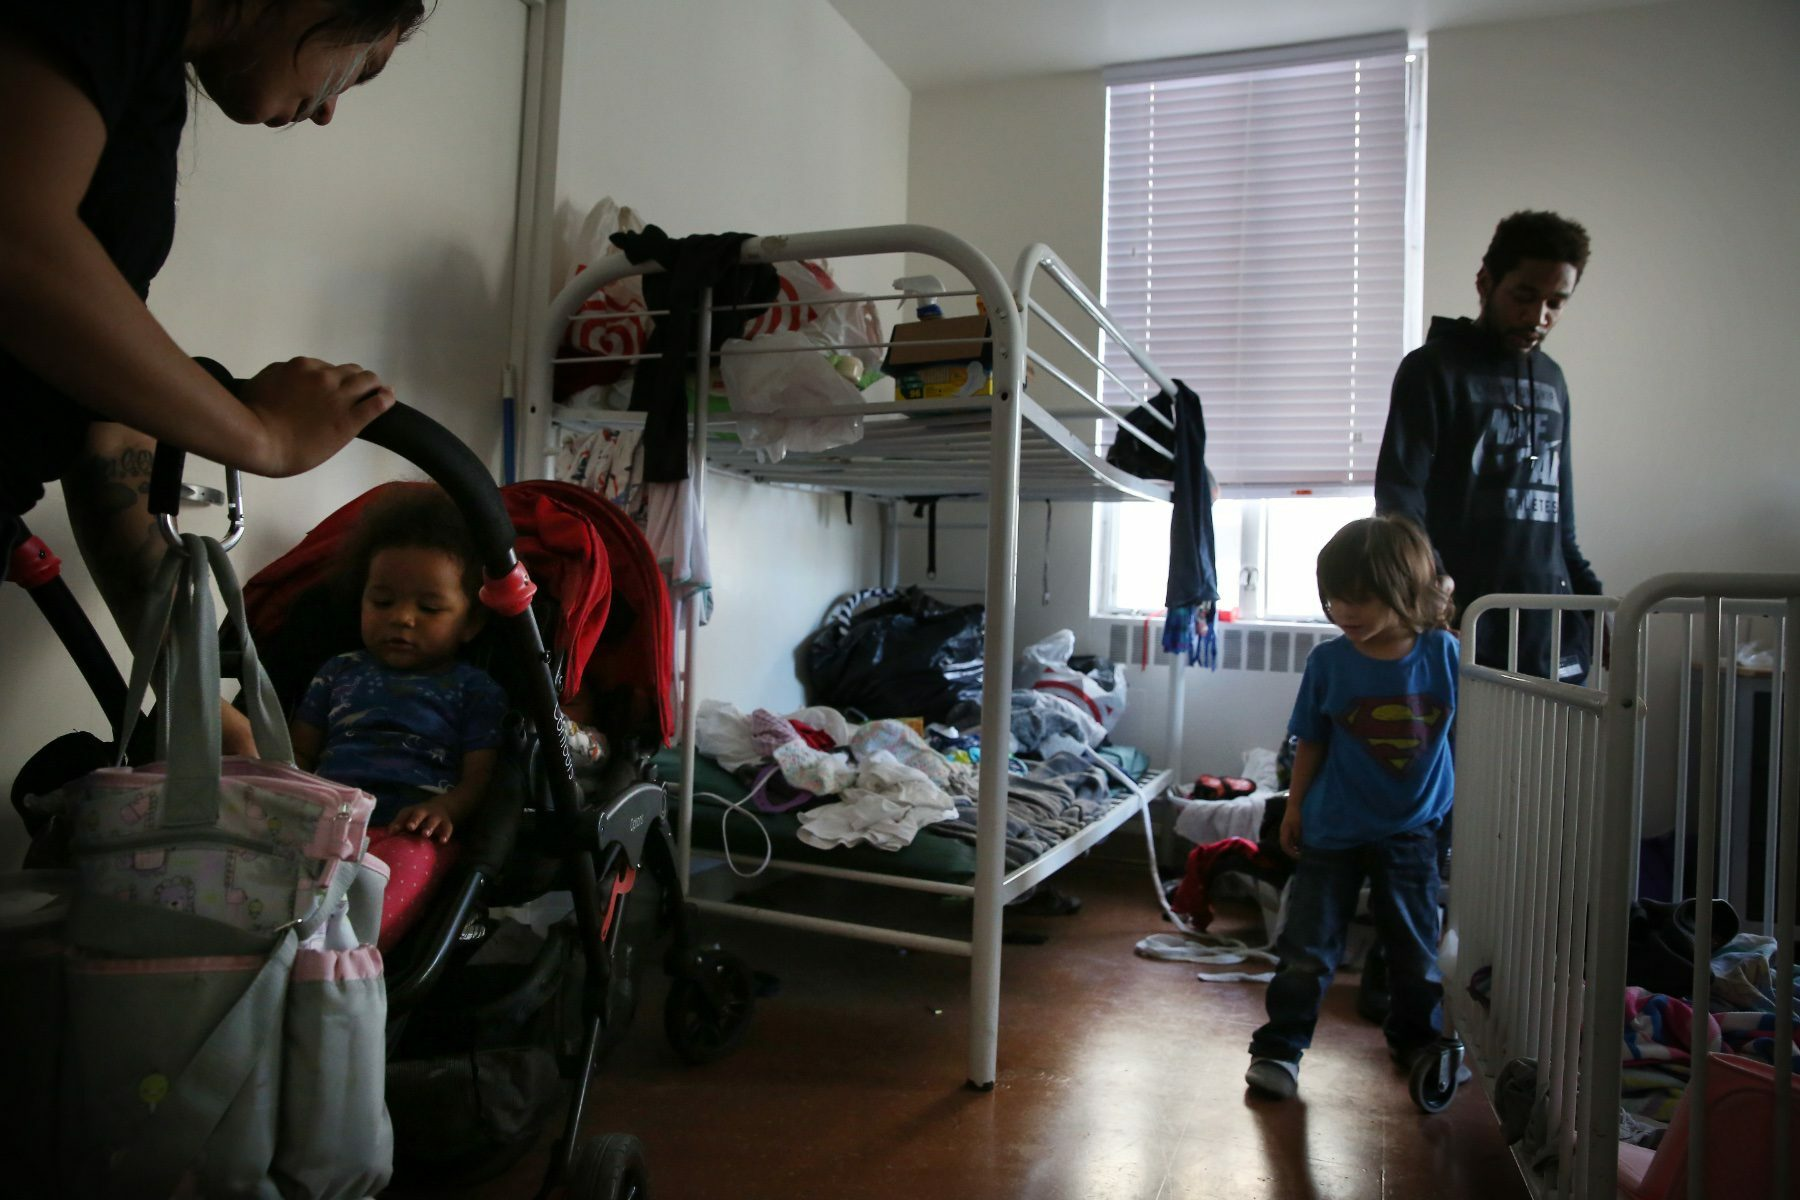 Photo of children and parents in a shelter.